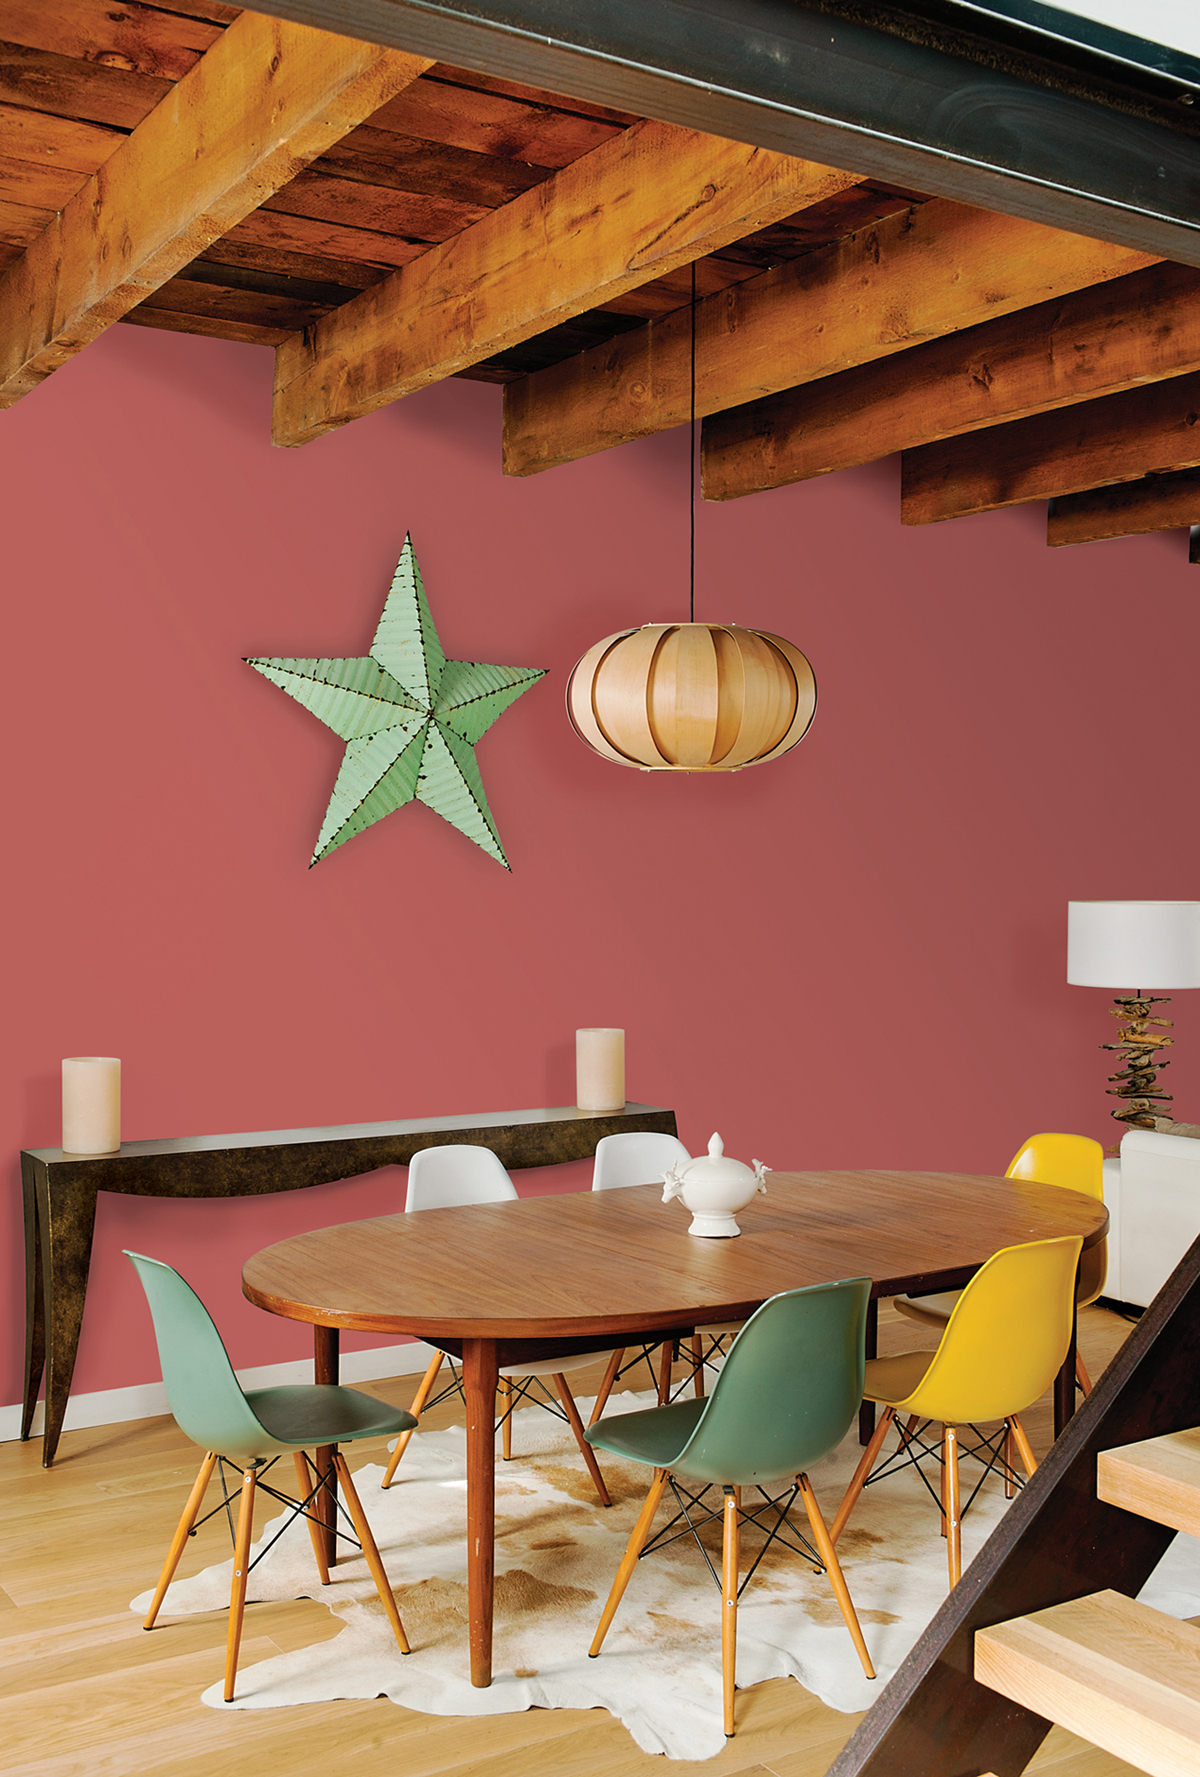 2016 Paint Trends Paint Colour Trends Go For Gold In 2016 With Sico Ppg Paints